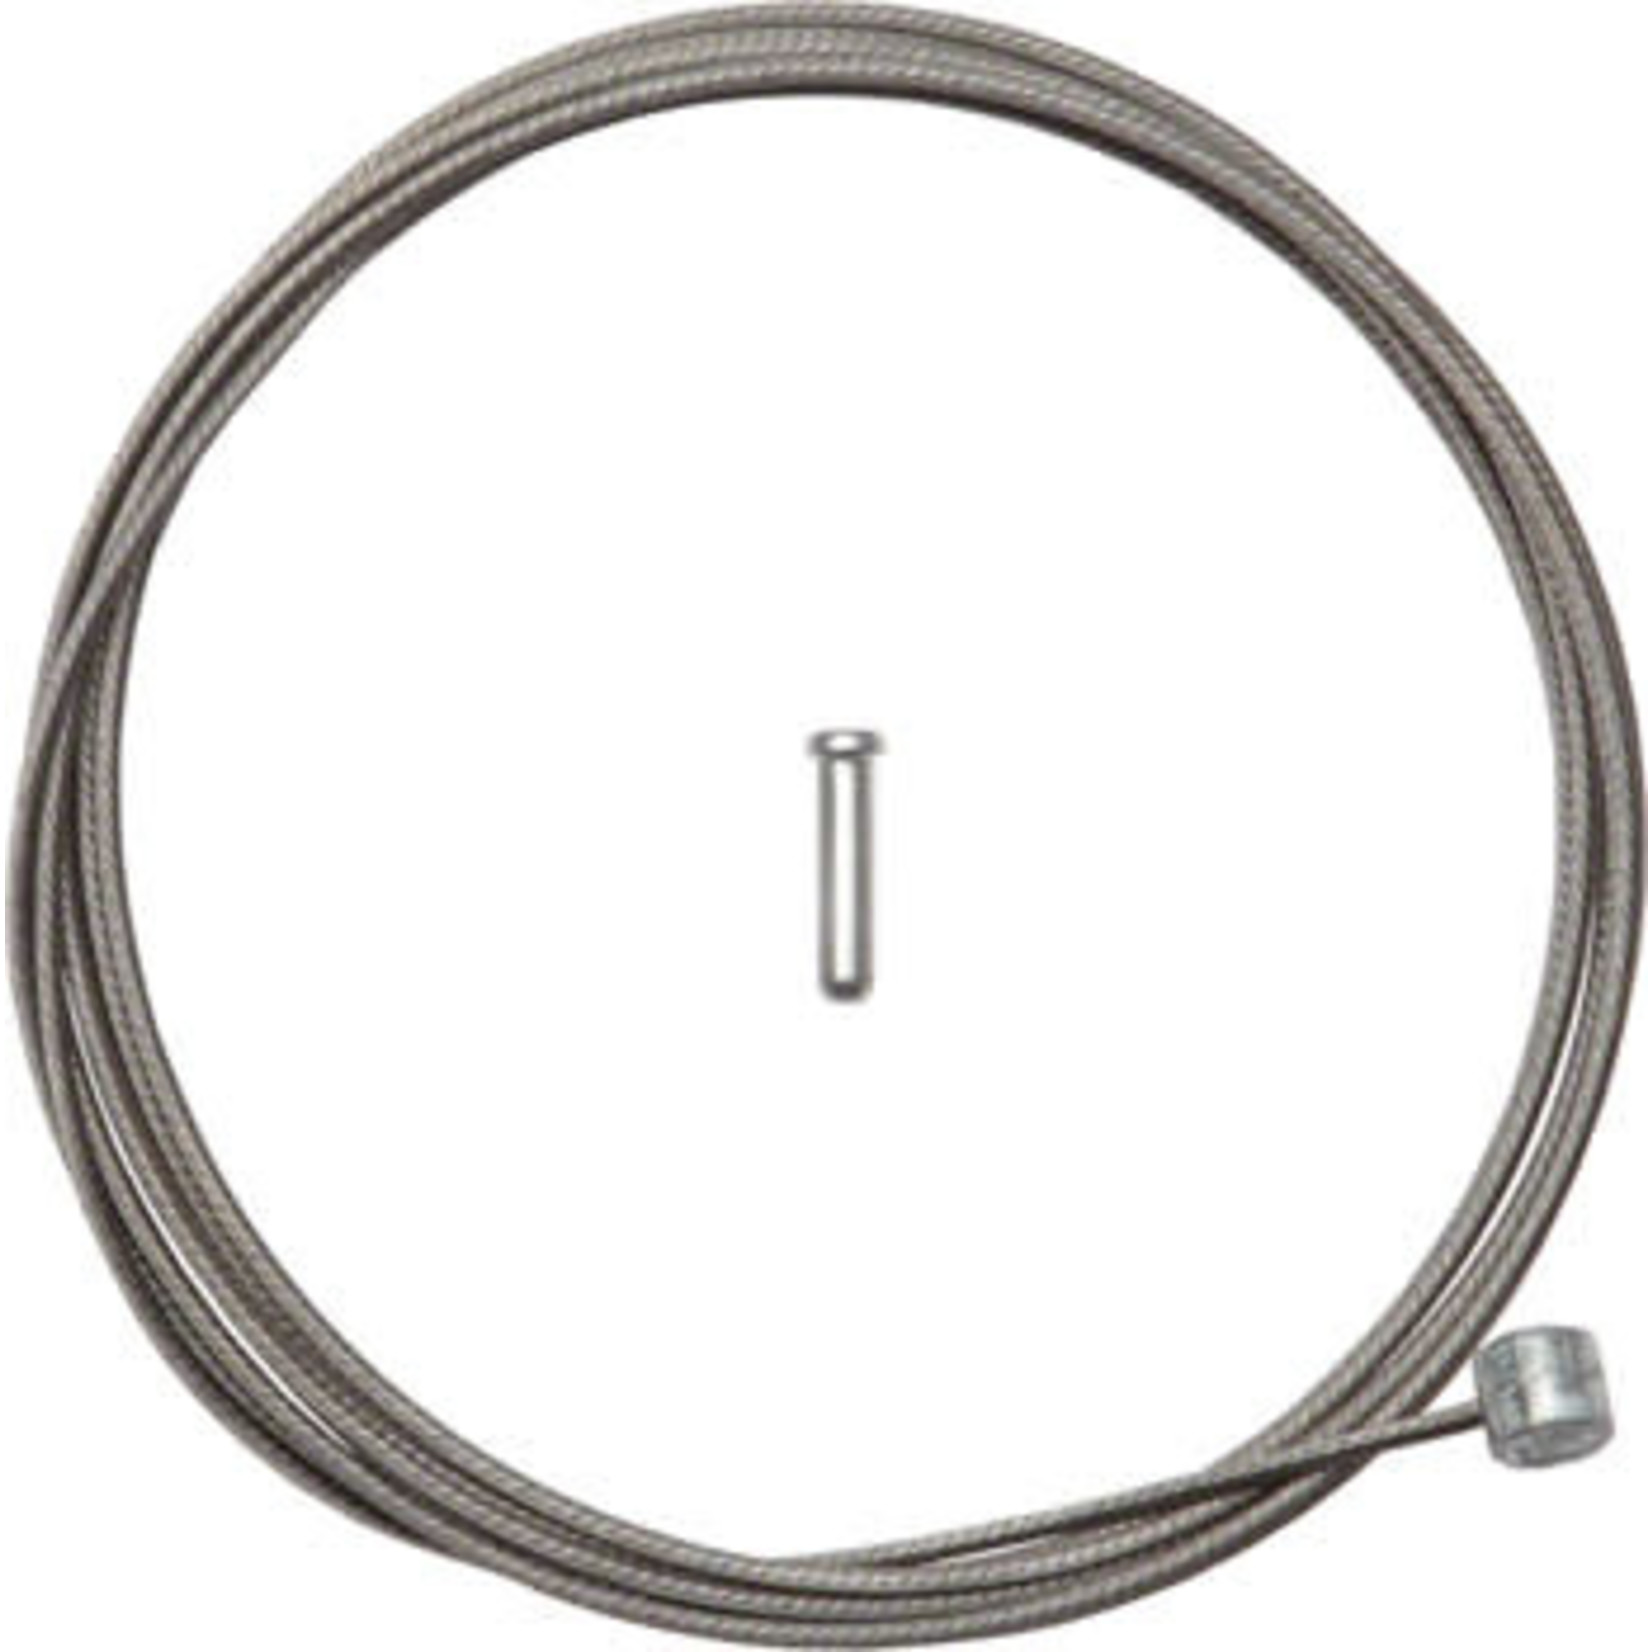 Shimano MTB Inner Brake Cable 2.05m x 1.6mm Stainless